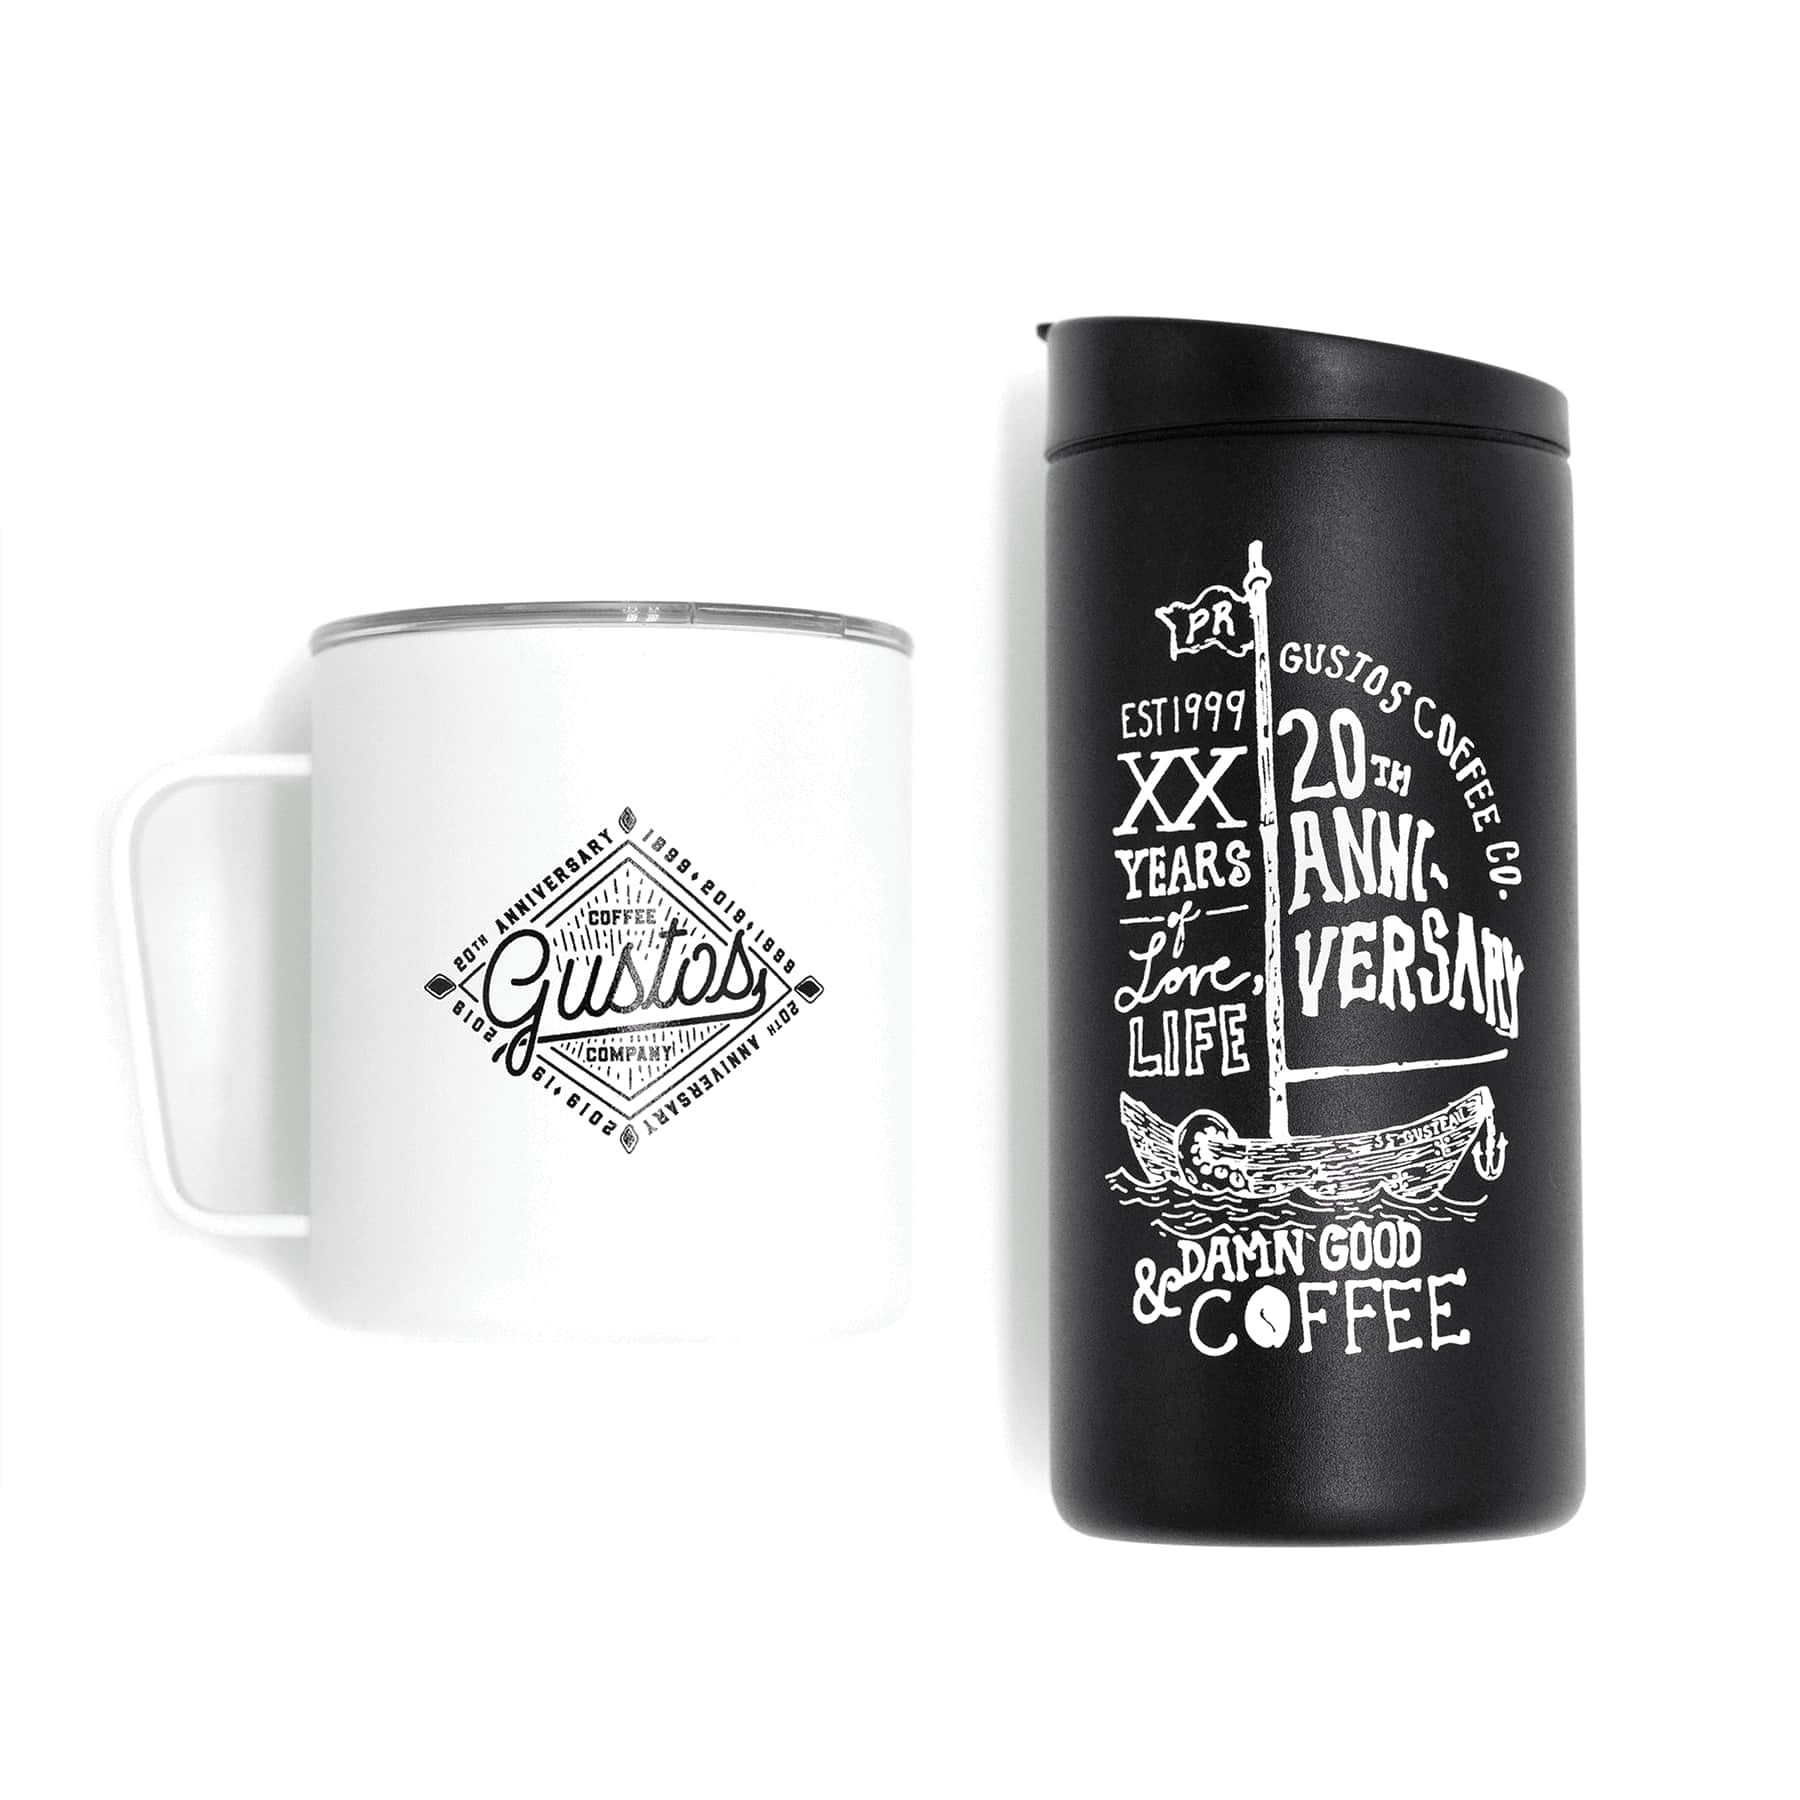 Matte White MiiR camp cup and a matte black miir 12 oz tumbler gift set duo Gustos Cafe Specialty Coffee Puerto Rico Keep your coffee fresh and warm